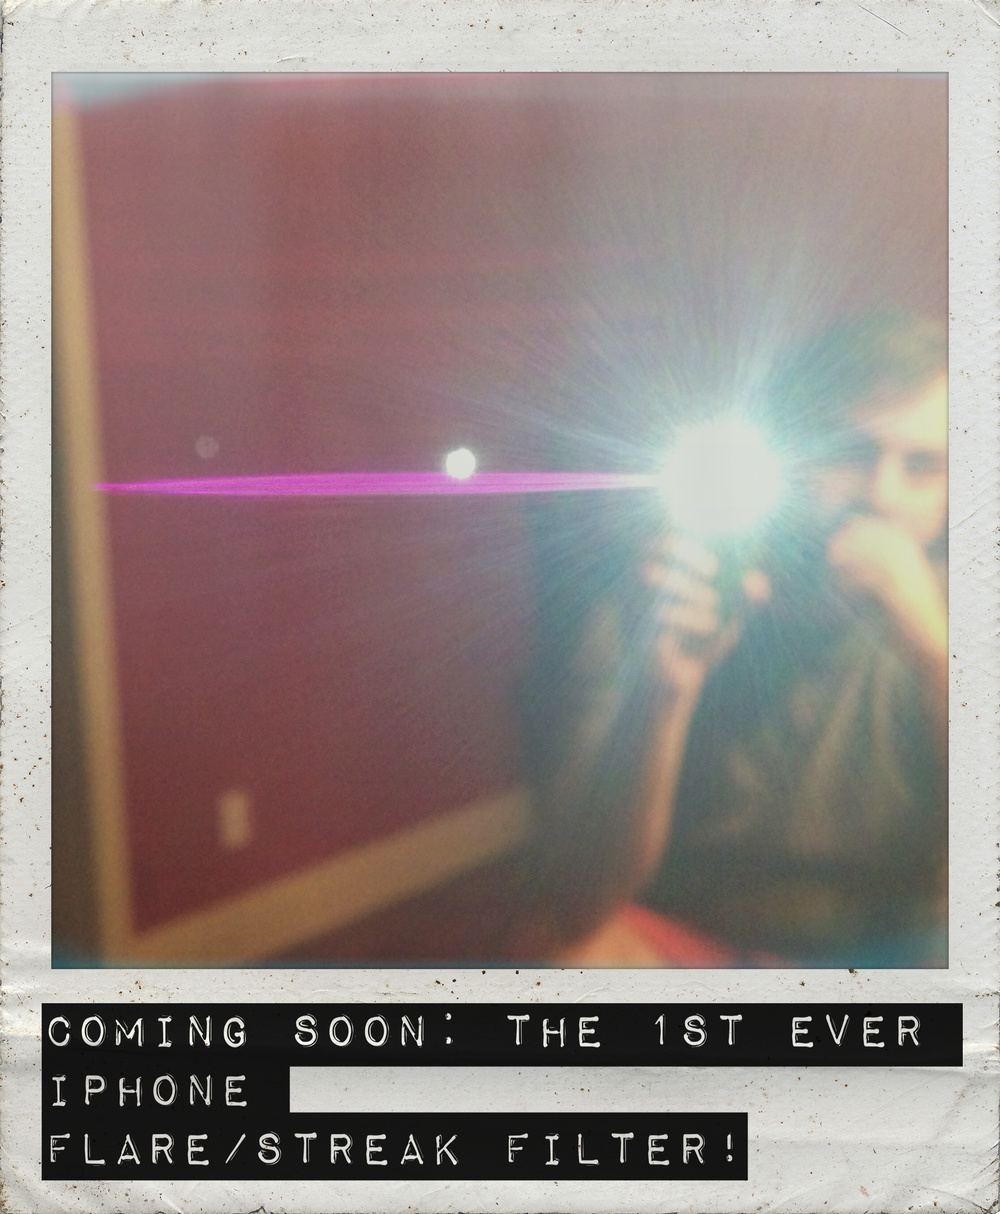 iPhone pic using the VSCO and Polamatic apps along with the Vid-Atlantic Fuchsia Flare/Streak Filter.